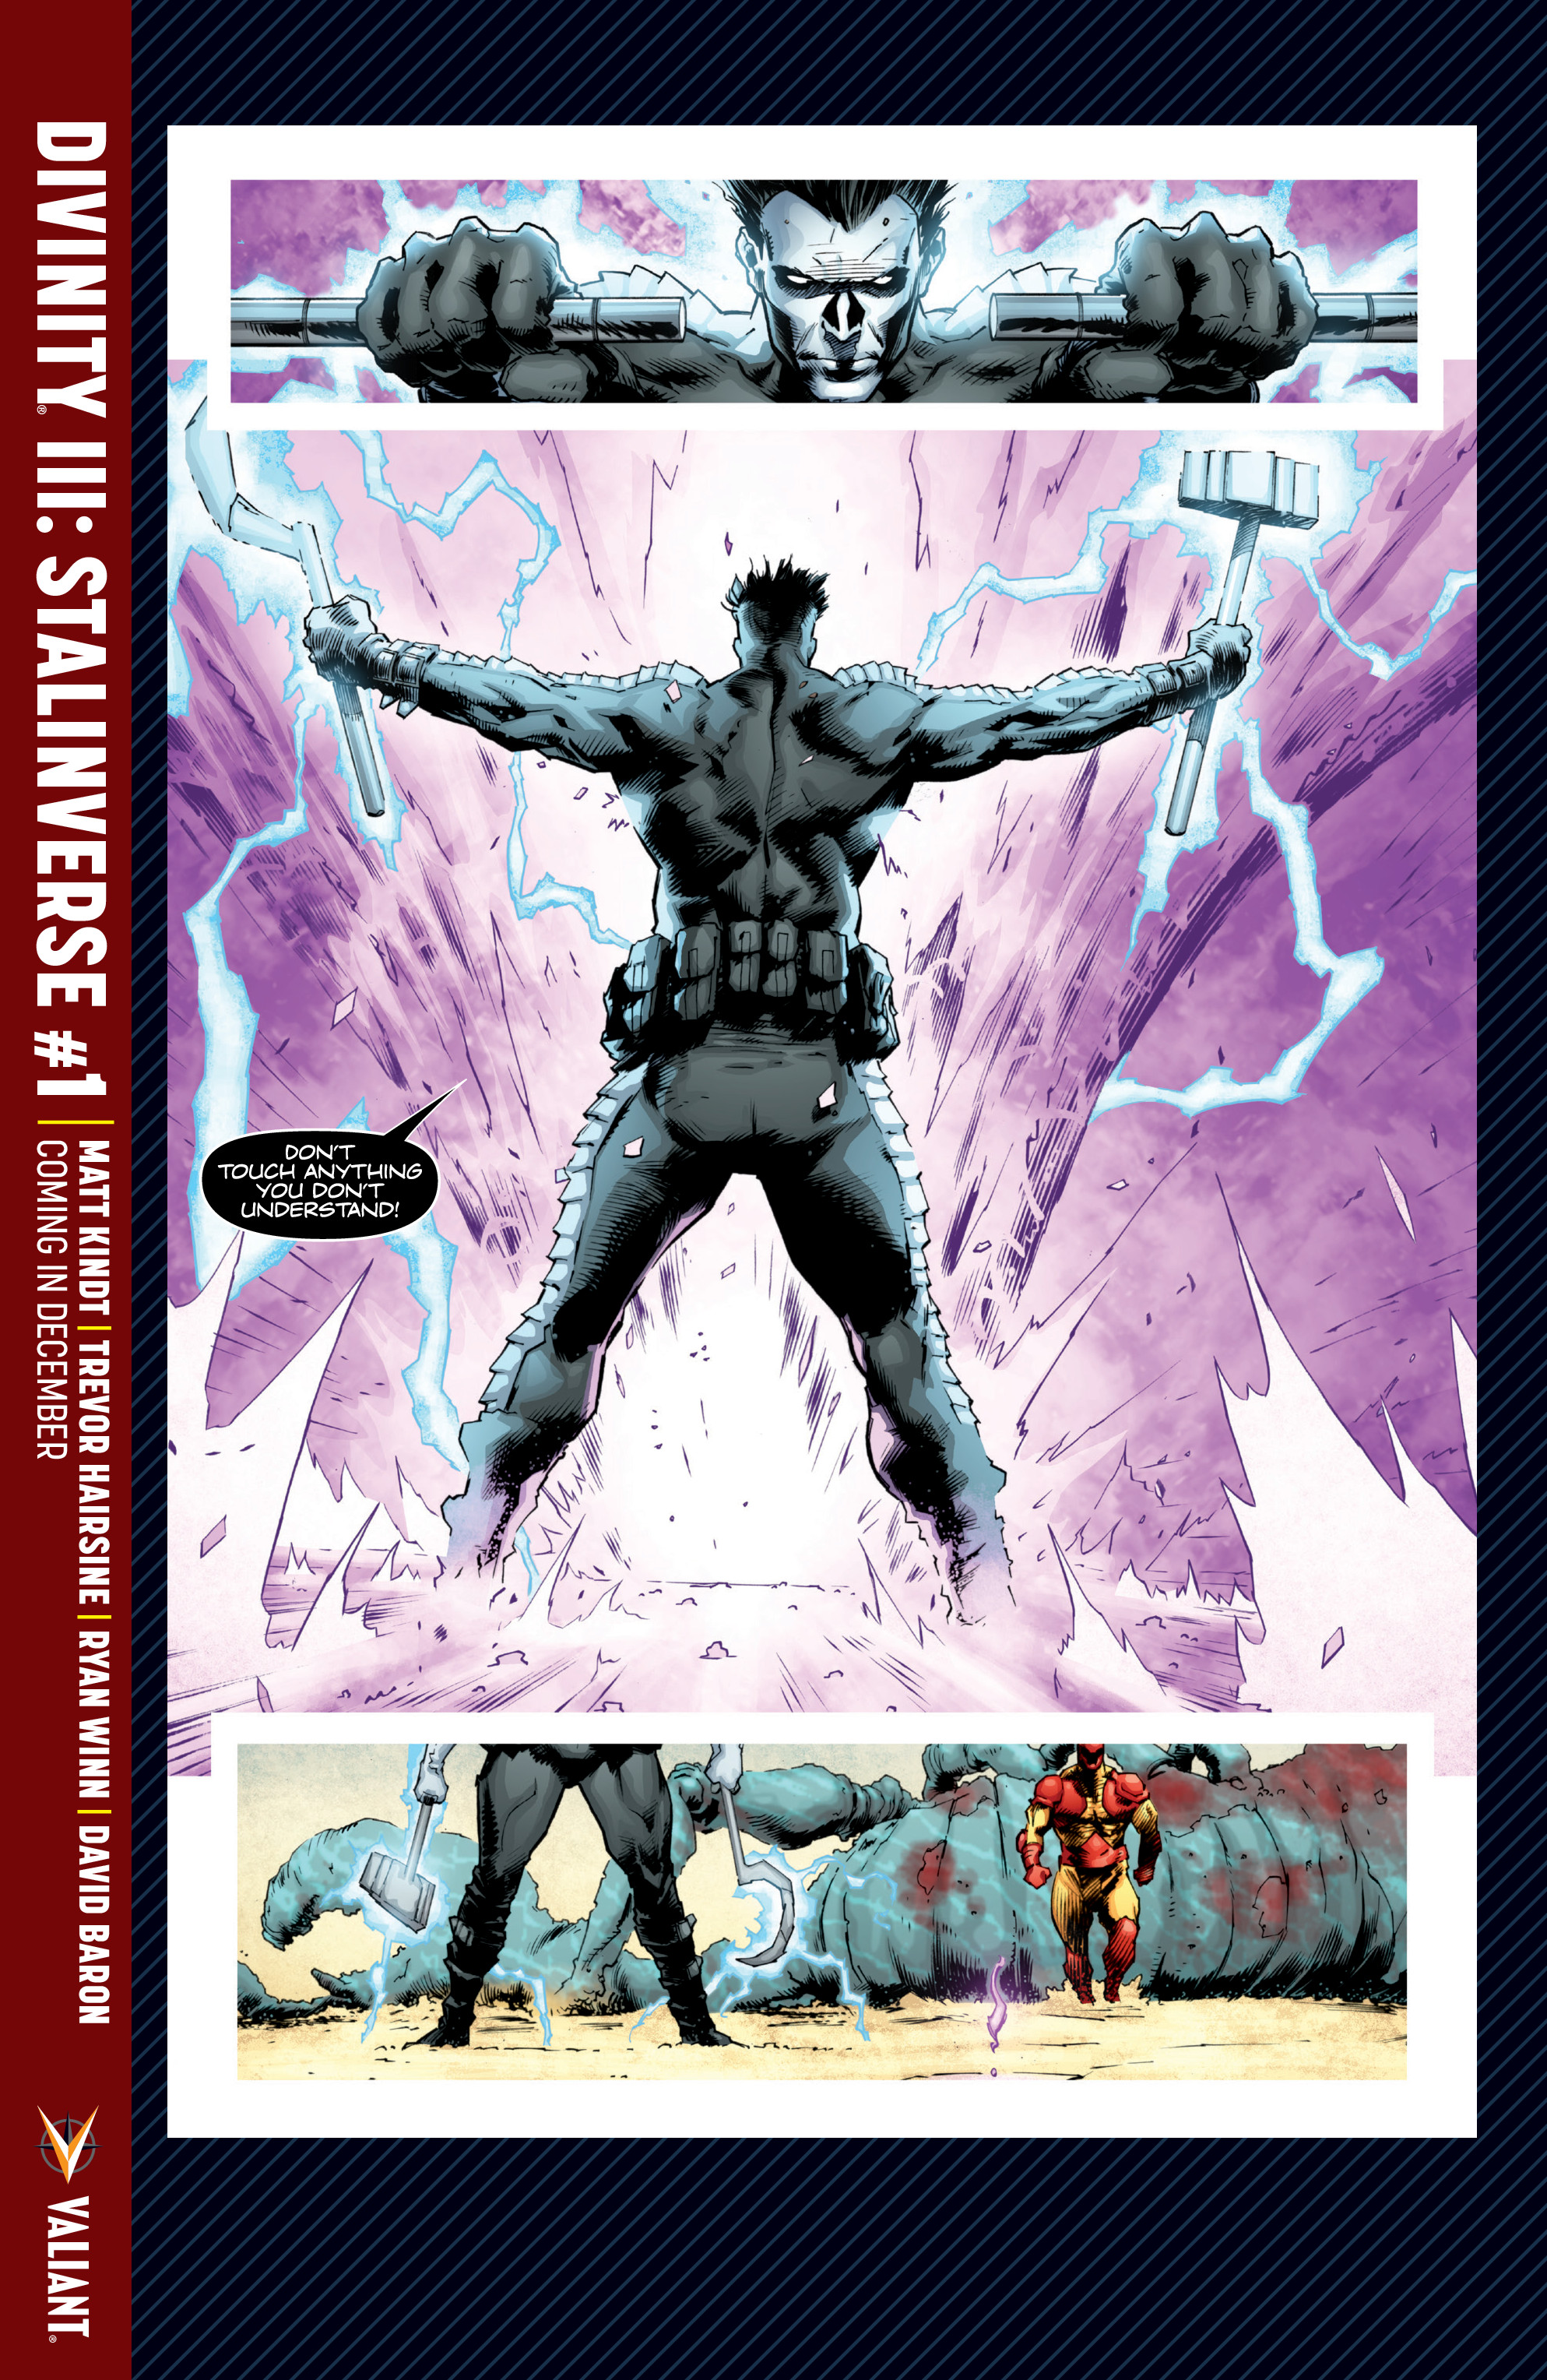 Read online Wrath of the Eternal Warrior comic -  Issue #14 - 27